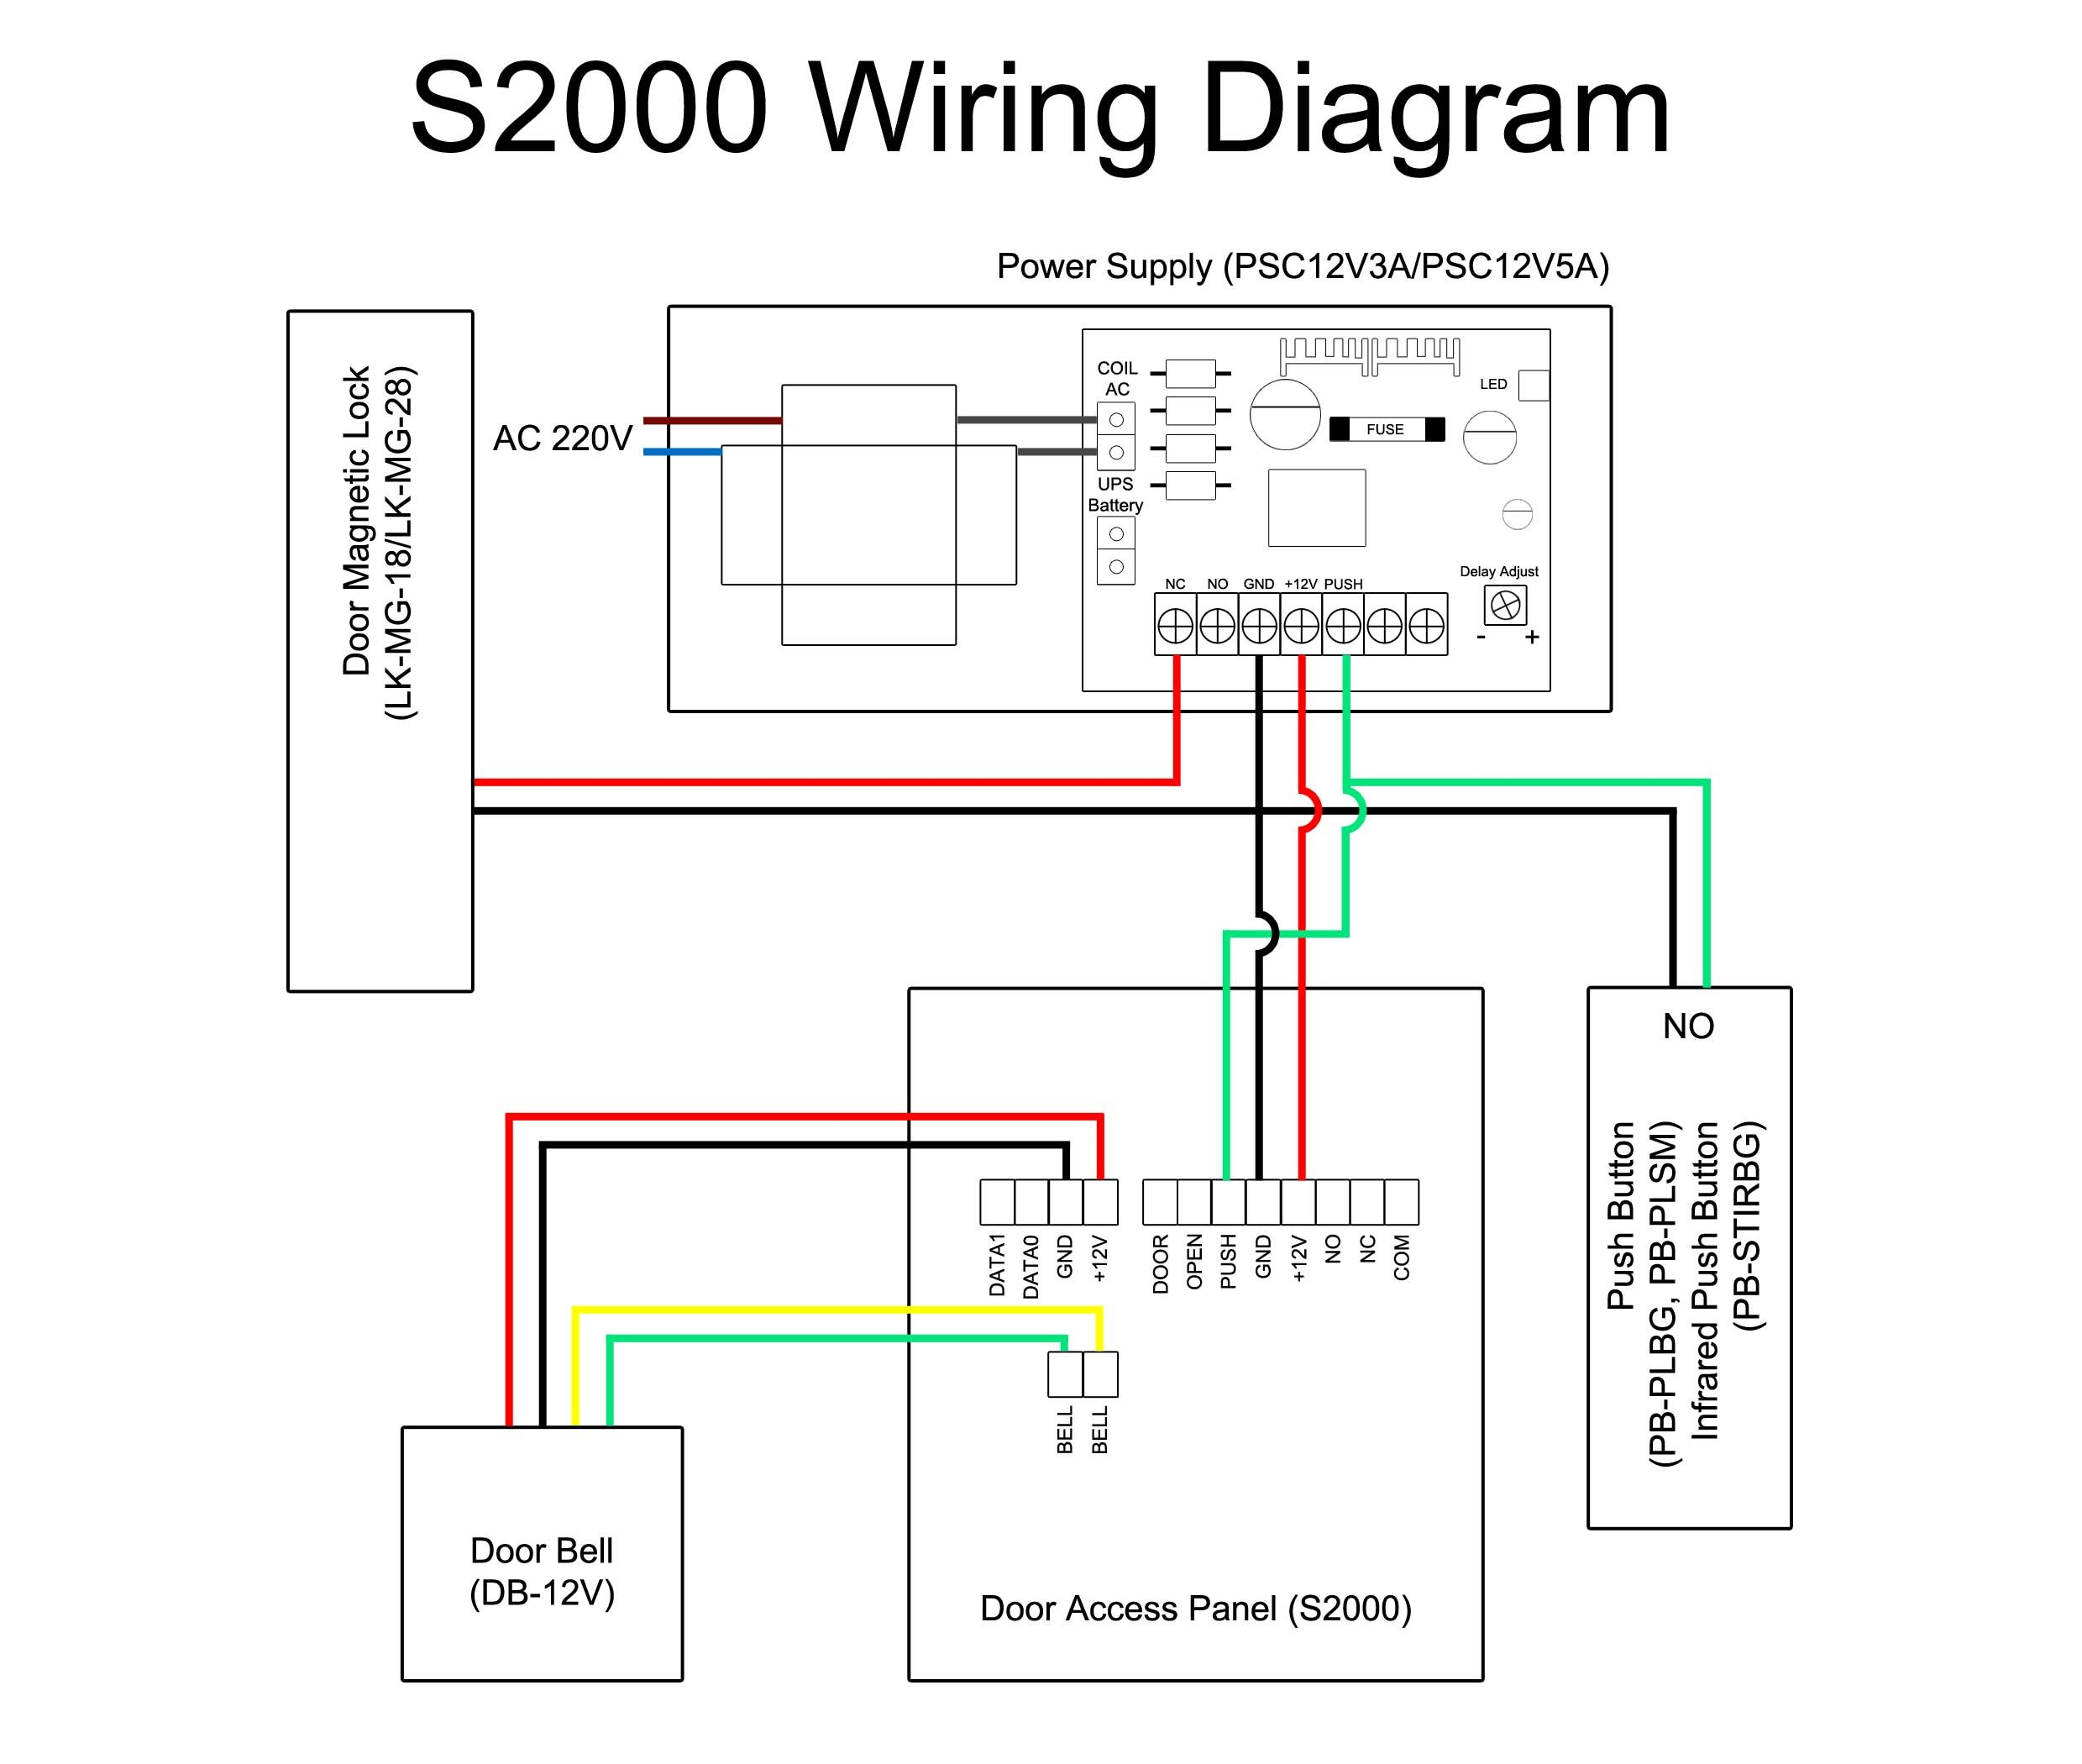 Voyager 9030 Wiring Diagram | Wiring Diagram - Voyager Trailer Brake Controller Wiring Diagram